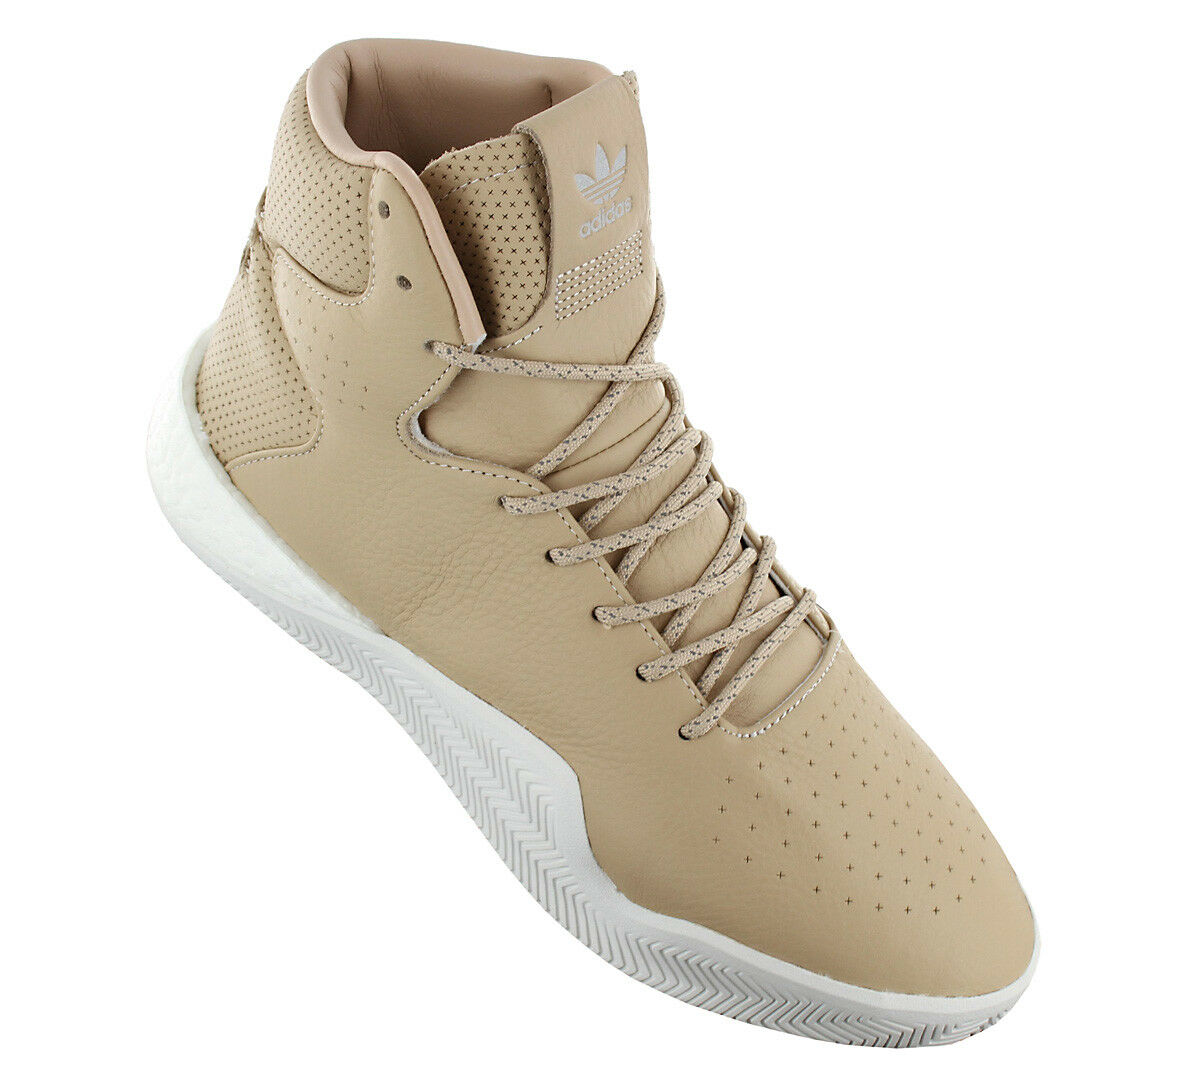 NEW adidas Tubular Instinct Boost BB8400 Men''s shoes Trainers Sneakers SALE